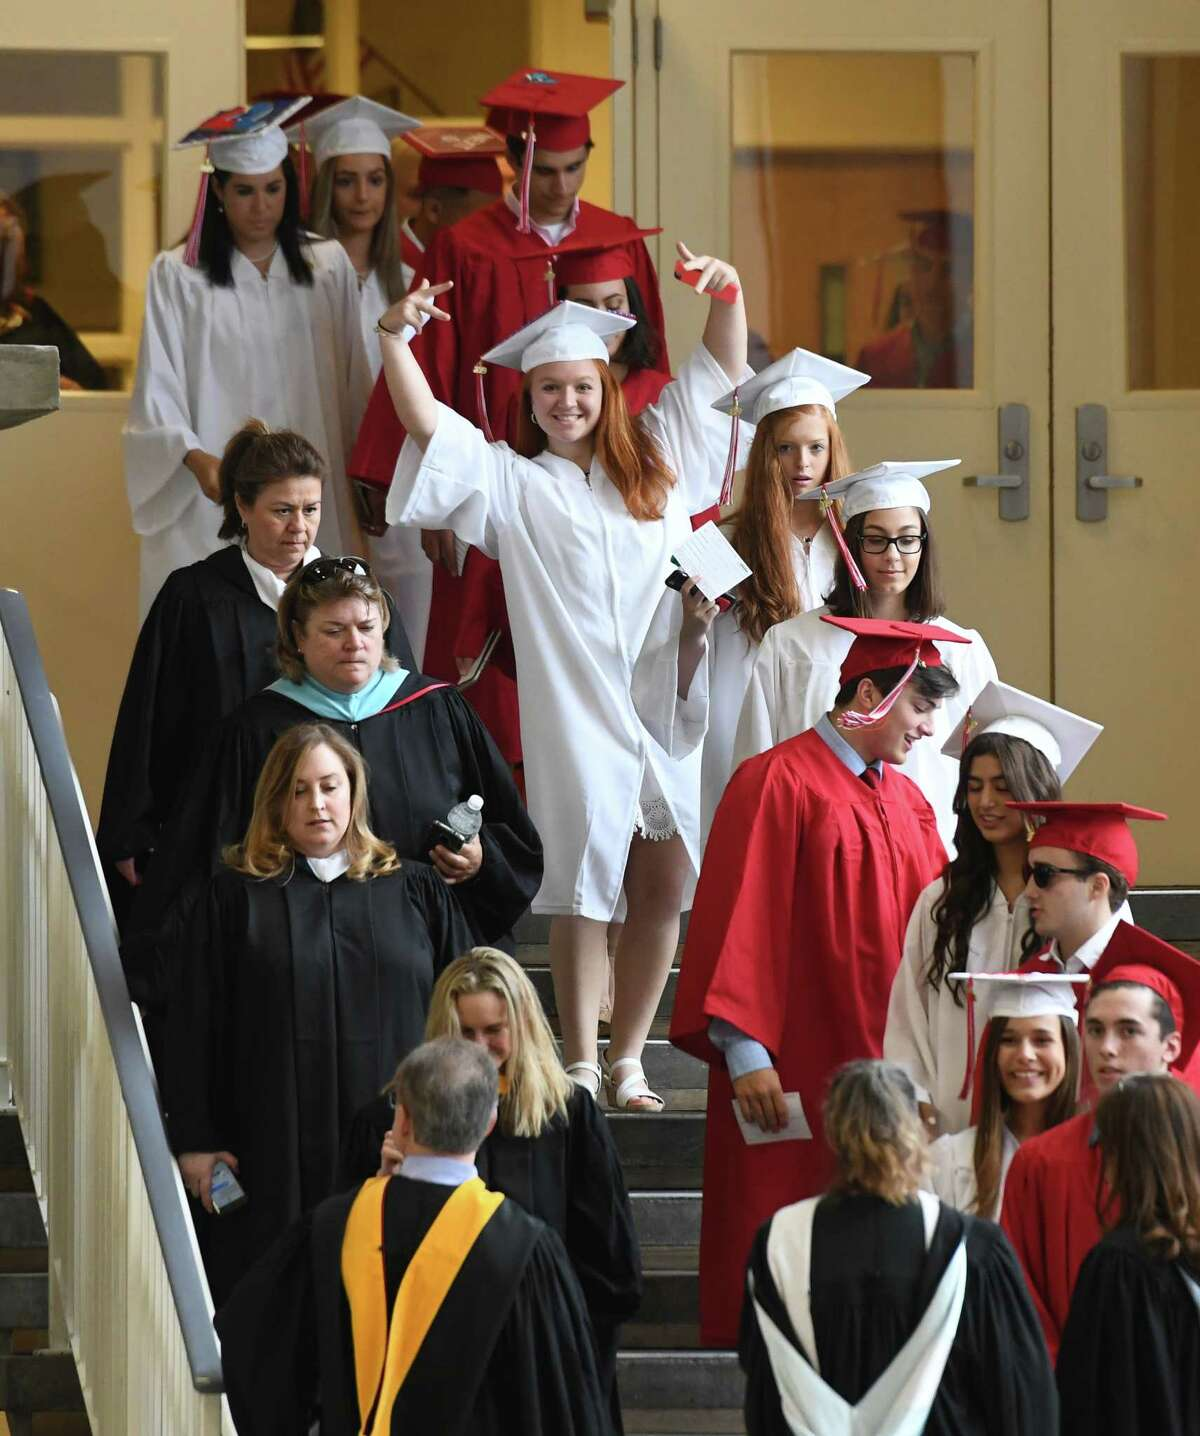 Photos from the 2019 Graduation at Greenwich's High School's Cardinal Stadium in Greenwich, Conn. Monday, June 17, 2019. Emmy-winning musician and composer Rob Mathes, GHS Class of 1981, delivered the commencement speech as 677 students received their diplomas.